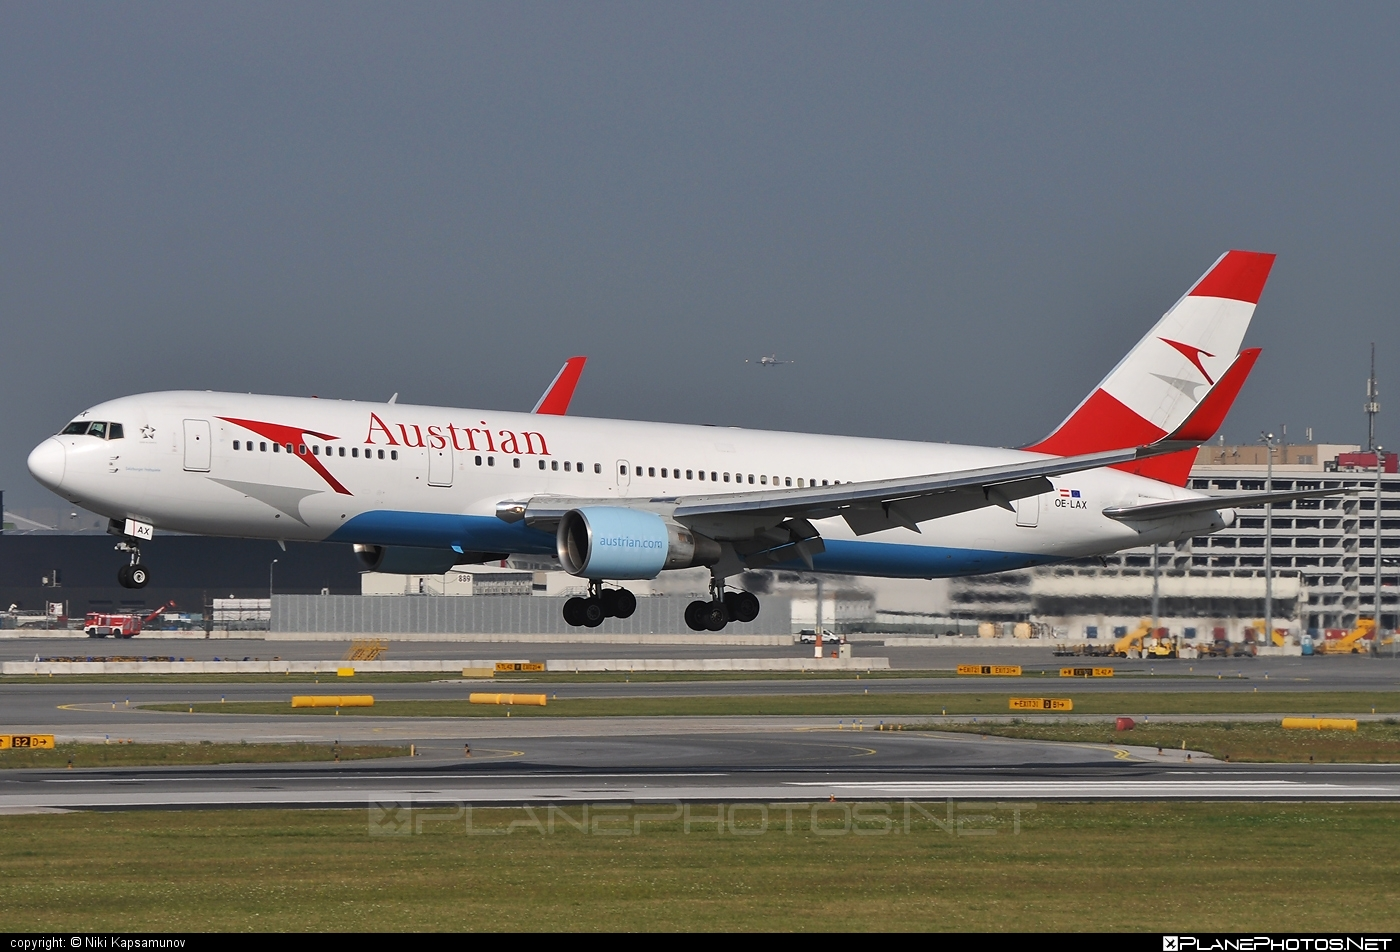 Boeing 767-300ER - OE-LAX operated by Austrian Airlines #b767 #b767er #boeing #boeing767